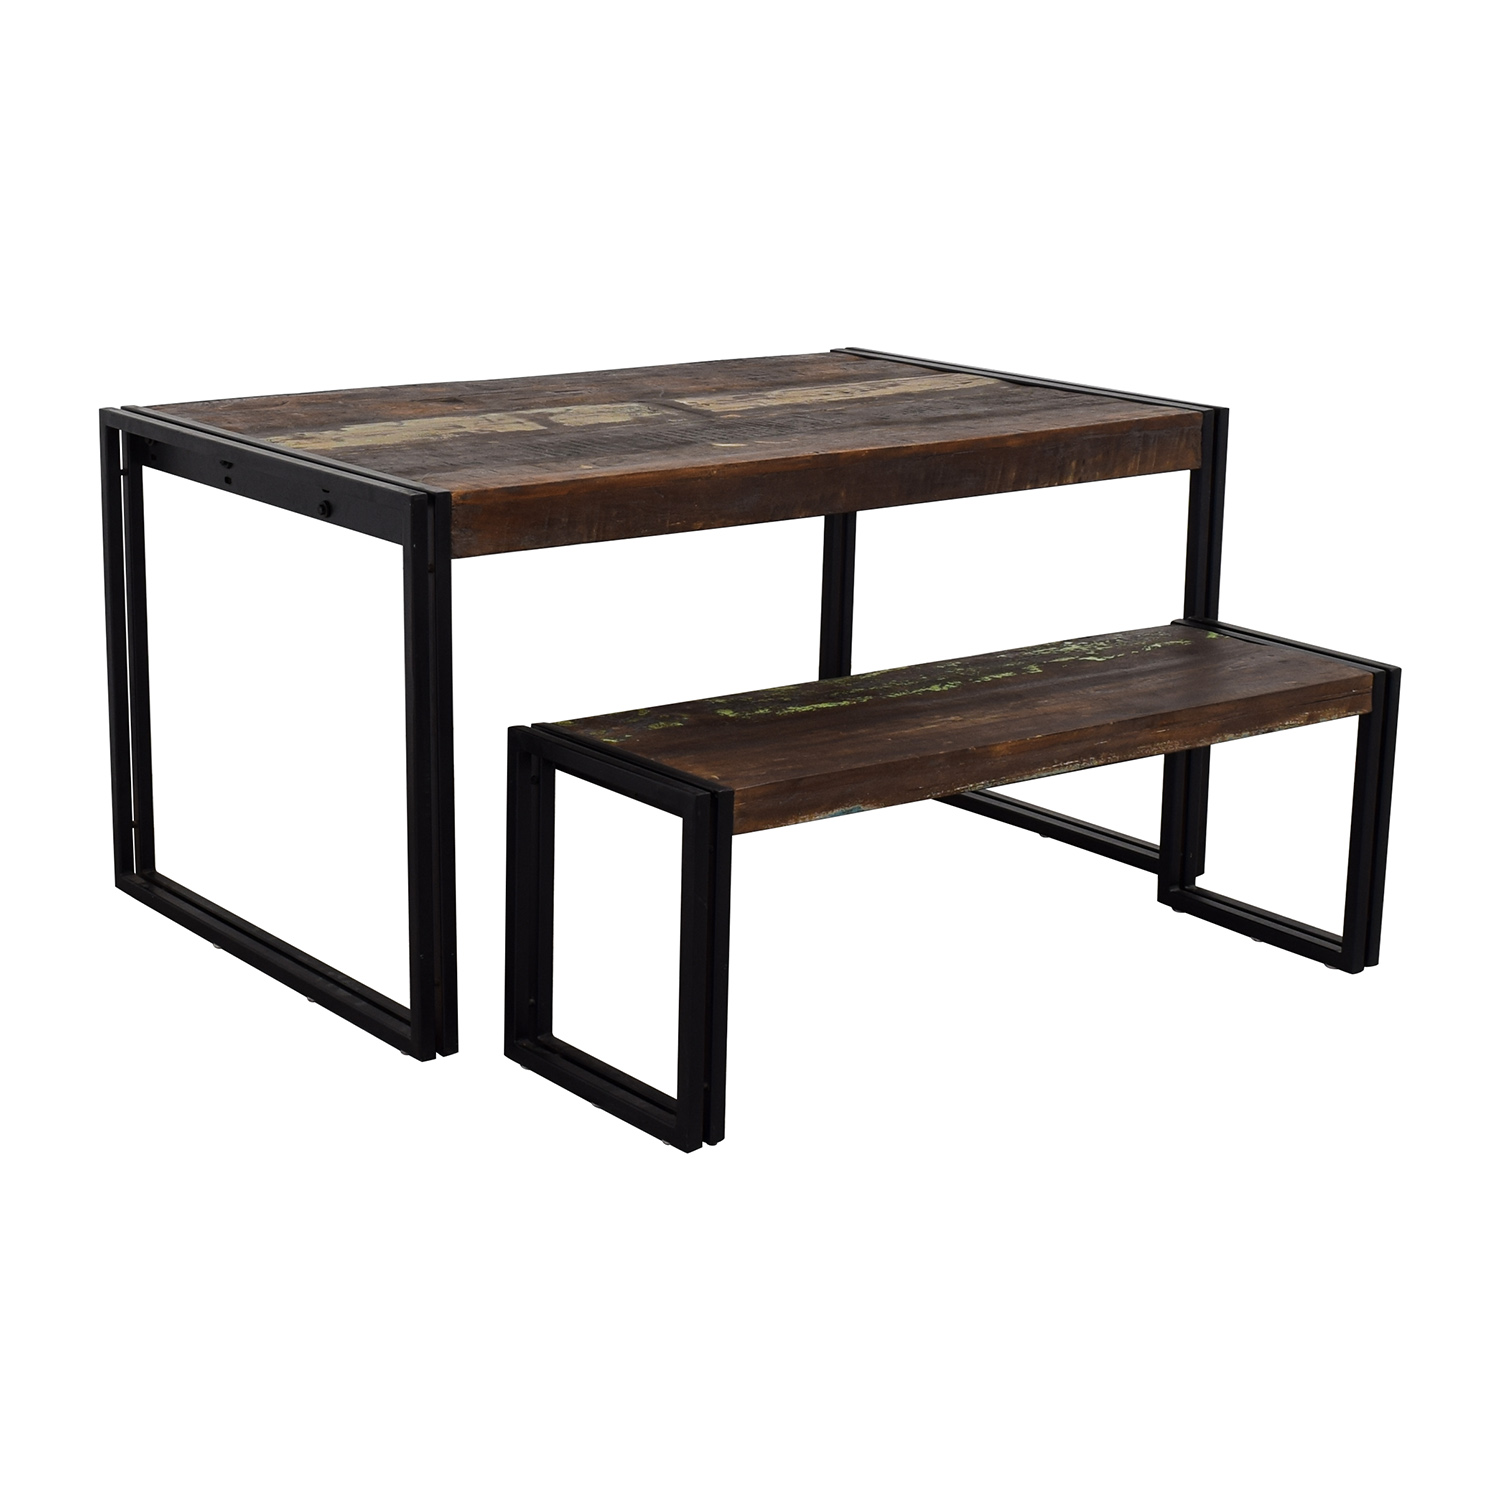 Timbergirl Timbergirl Solid Reclaimed Wood Dining Table With Bench used